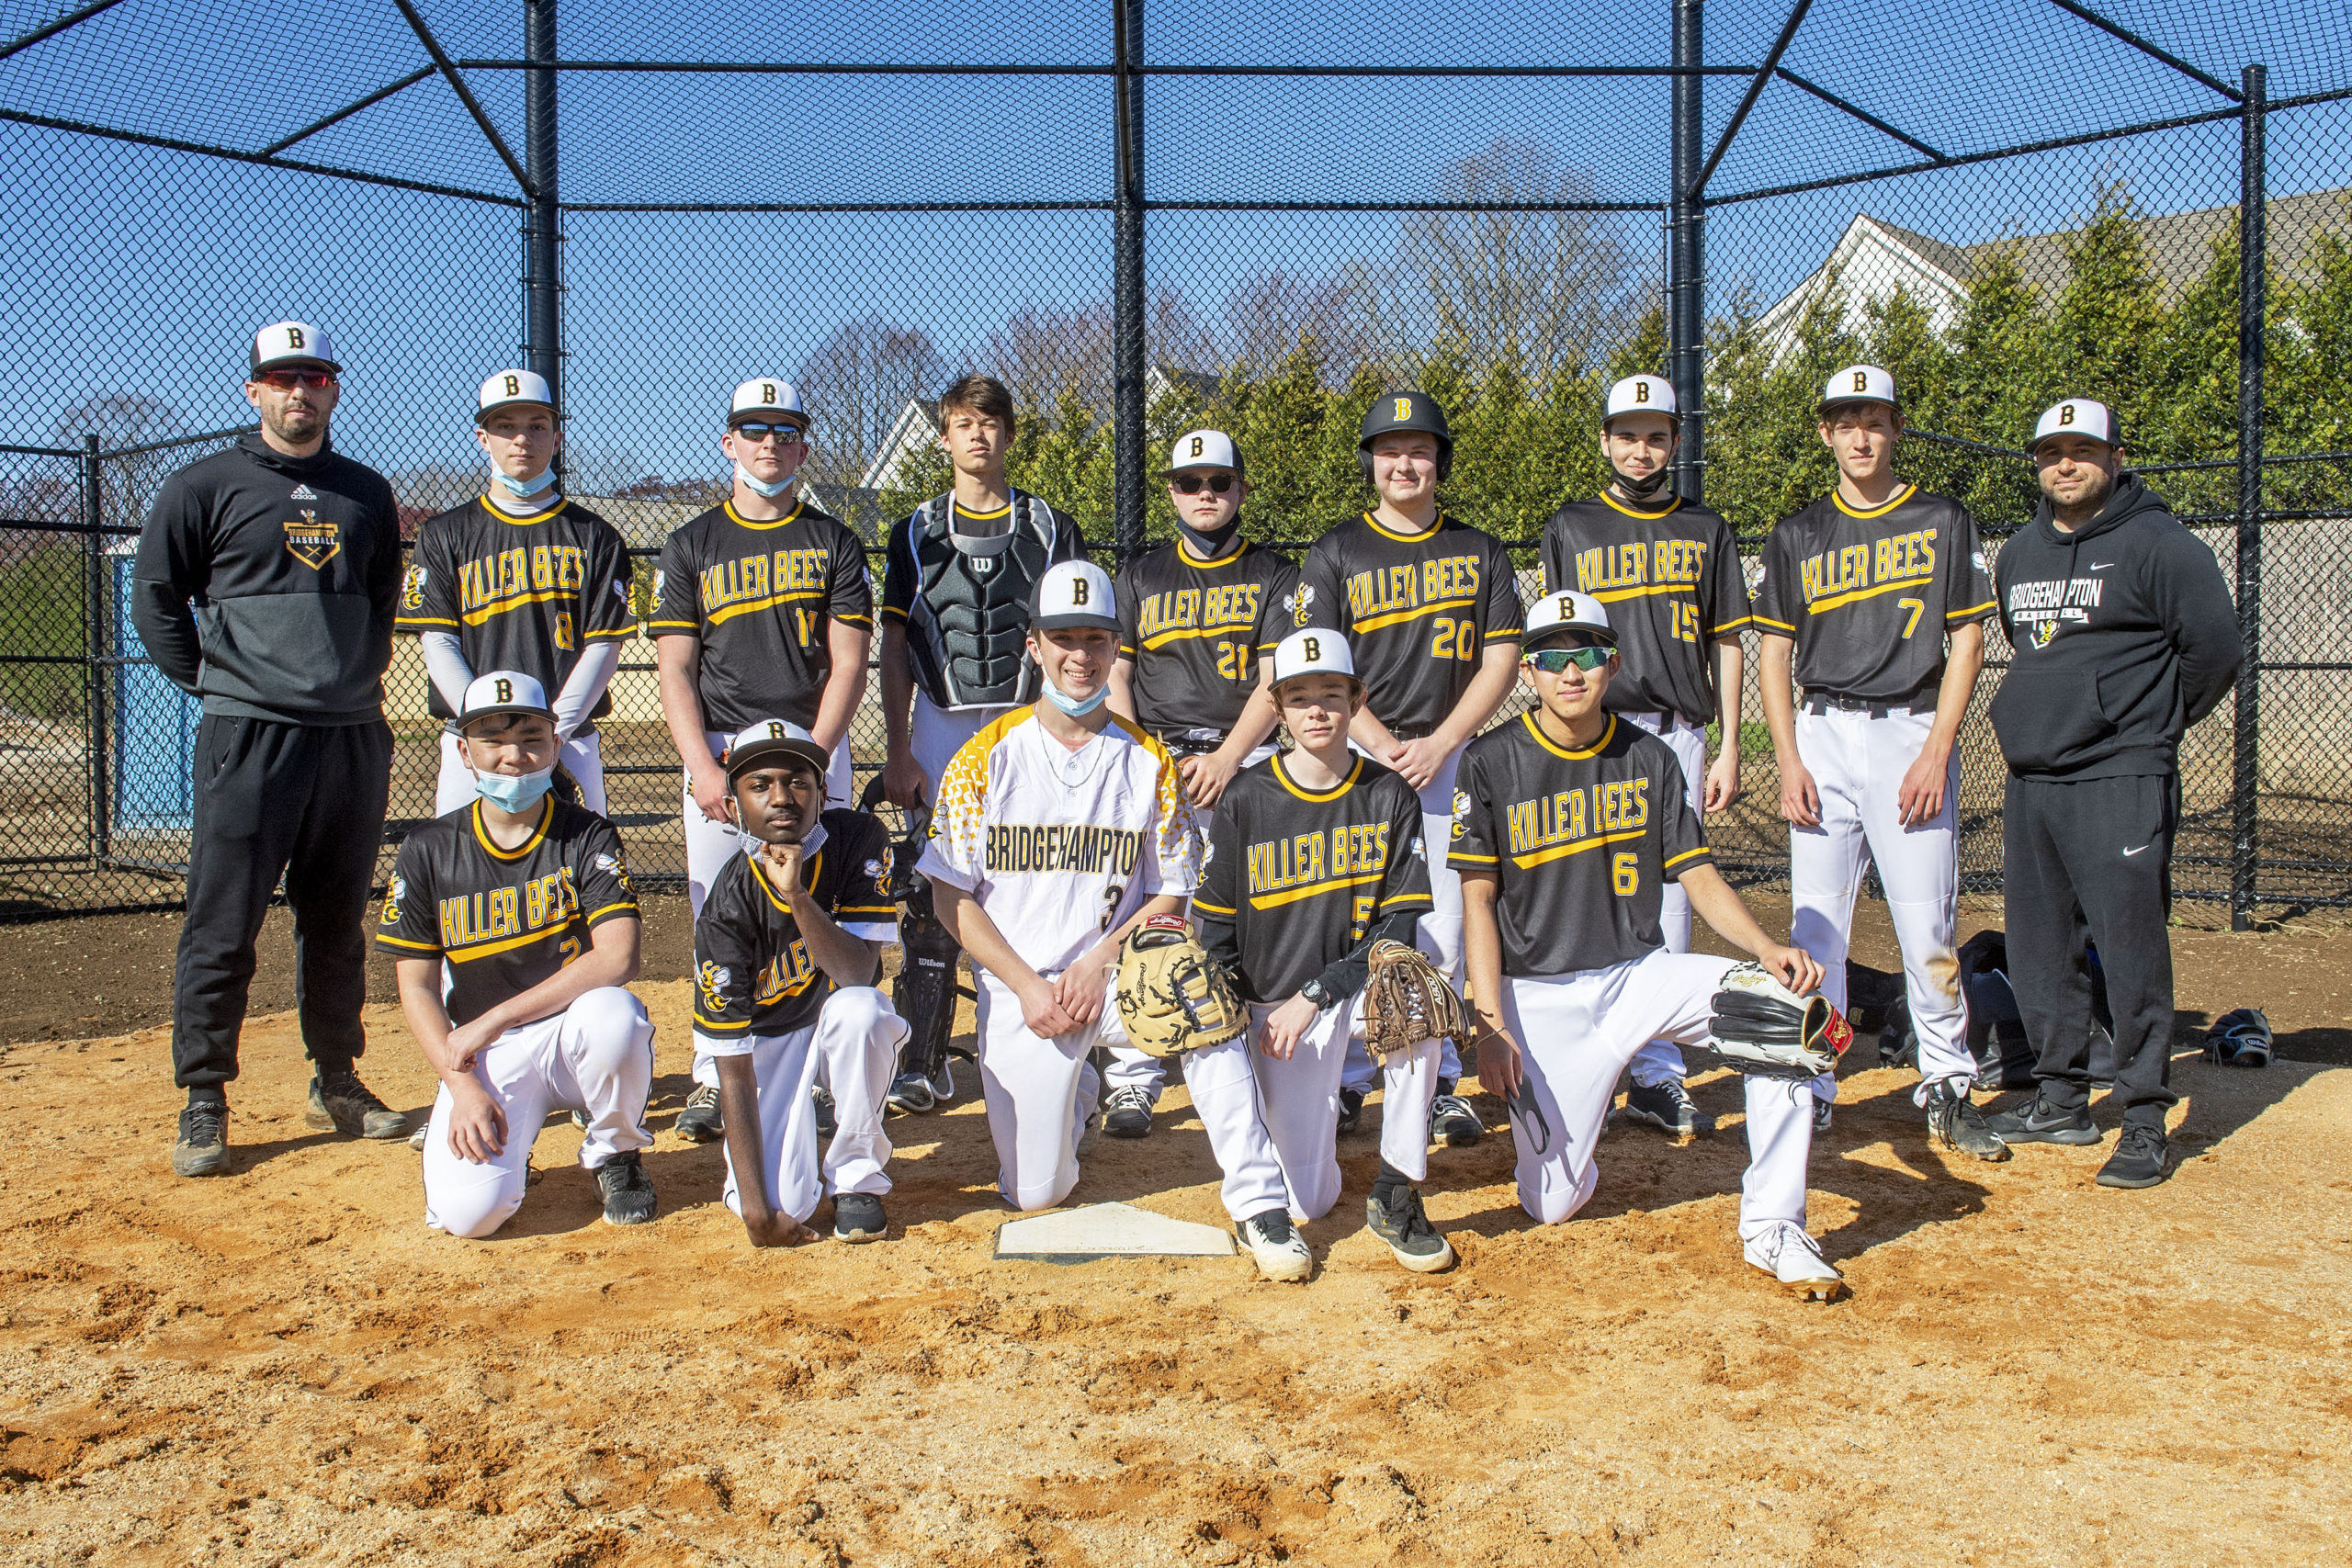 Members of the first Bridgehampton High School baseball team in four decades began practicing this week for an inaugural junior varsity season. Front row, from left: Hugo Kapon, Neo Simmons, Kris Vinski, Will Husband, and Yudai Morikawa. Second row, from left, Coach Lou Liberatore, Scott Vinski, Dylan Fitzgerald, Milo Tompkins, Shawn Gnyp, Jack Boeshore, Evan Buccigross, Eli Wolf, and assistant coach Michael DeRosa. Tyler Fitzgerald, Naiven Mabry, Kaylee Sanchez, and Leah Meyerson are missing. MICHAEL HELLER